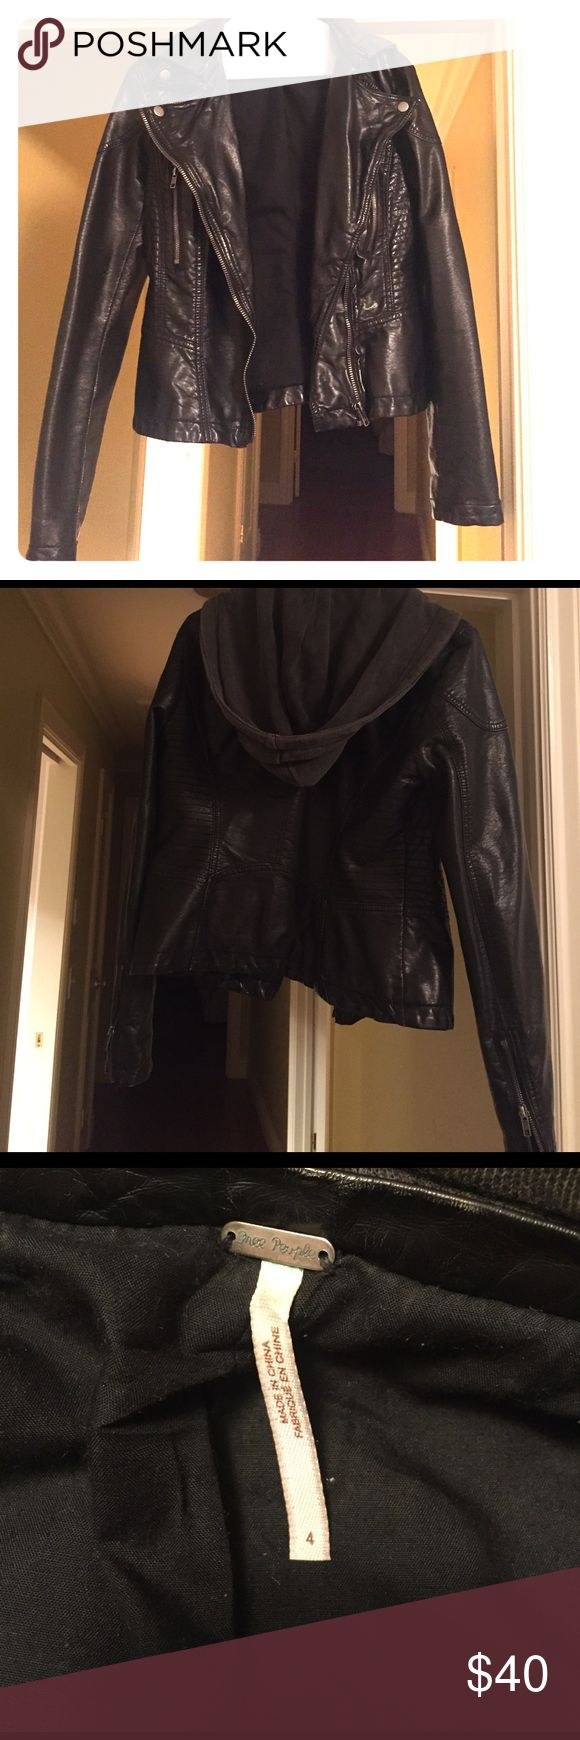 Free People Vegan Hooded Leather Jacket Size 4 jacket. Only wore a handful of times, I ended up buying a smaller size. It is perfect condition with the exception of a small tear in the inside armpit sleeve area. See the photo for reference. Free People Jackets & Coats